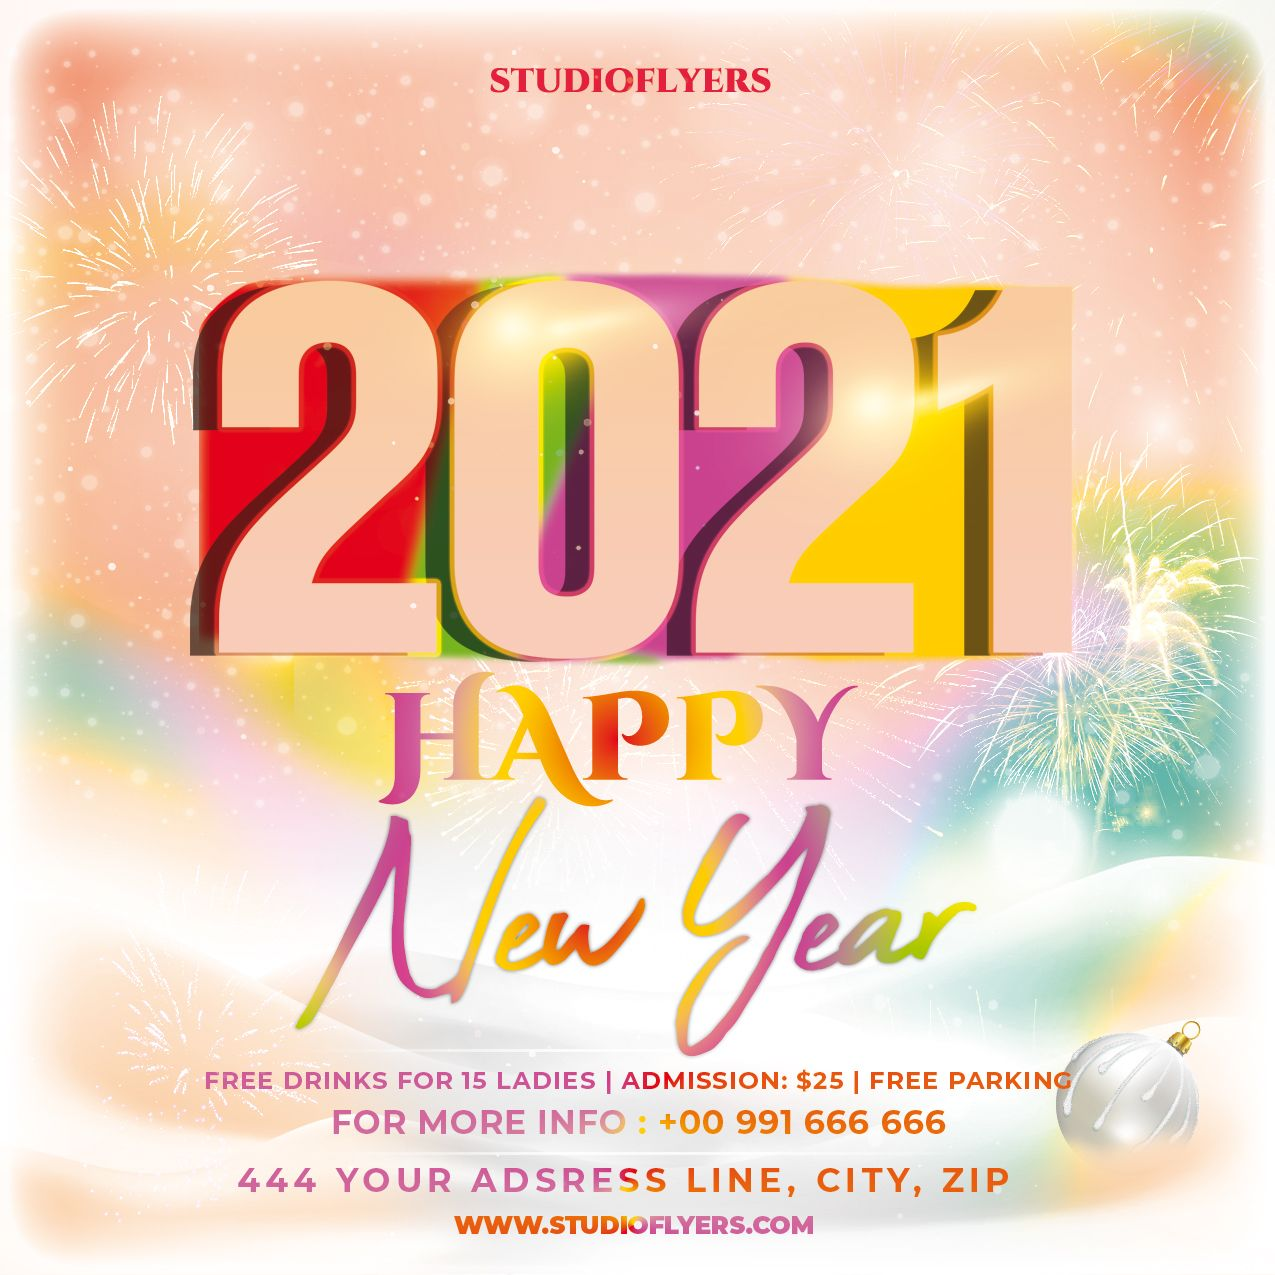 New Year 2021 Flyer Free Psd Template Studioflyers Com Free Psd Flyer Templates Psd Template Free Psd Flyer Templates